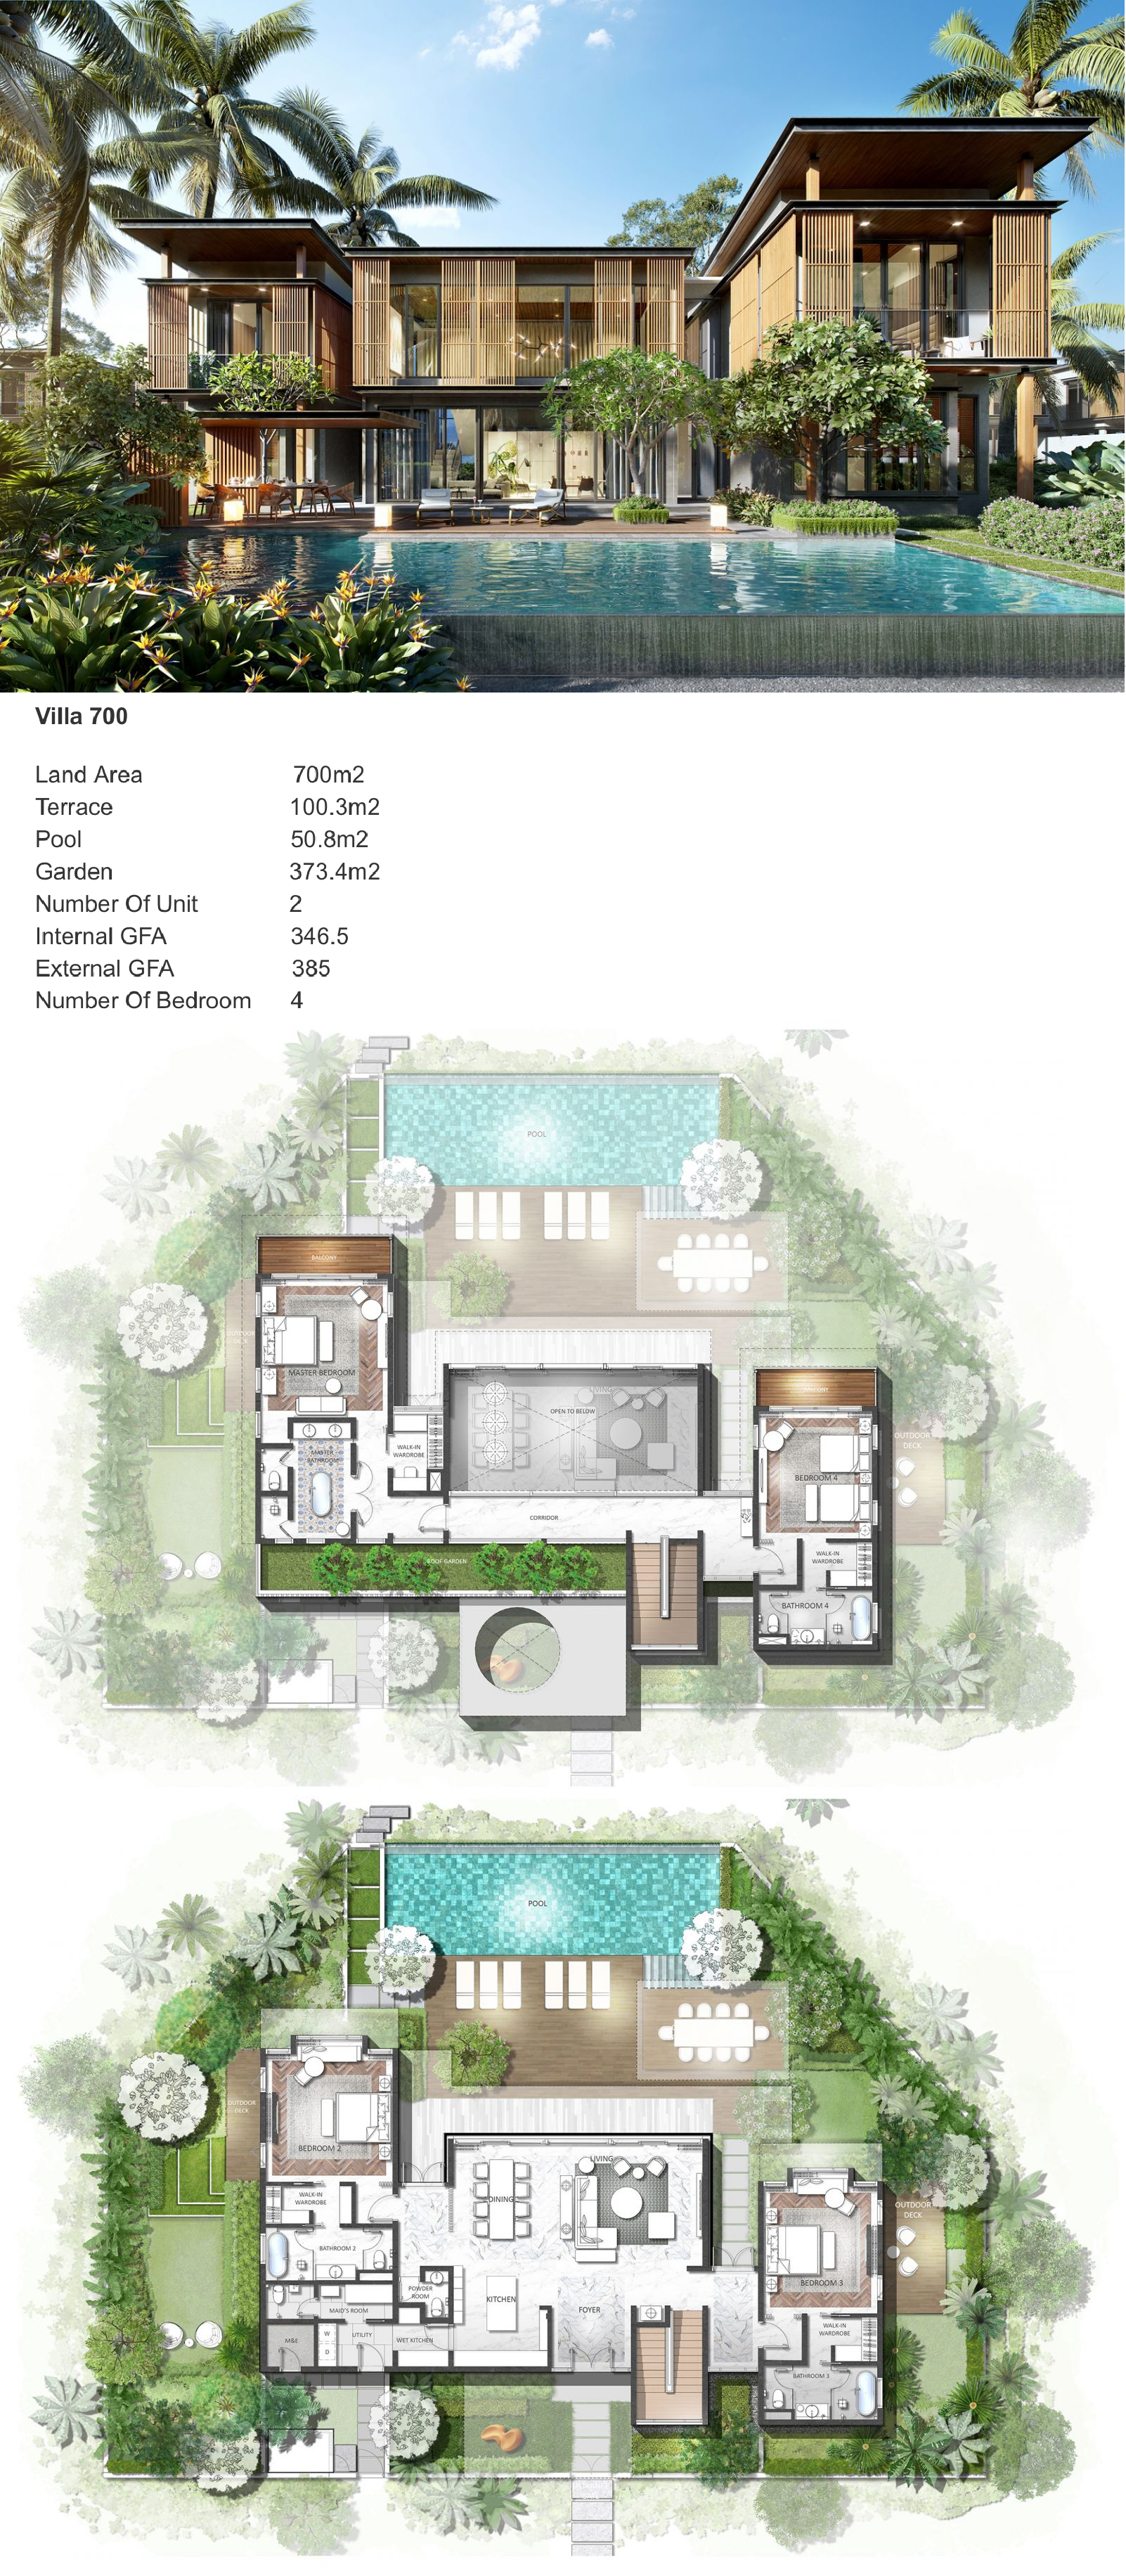 Le Meridien Residences Danang House Plans Mansion Mansion Floor Plan Luxury Floor Plans